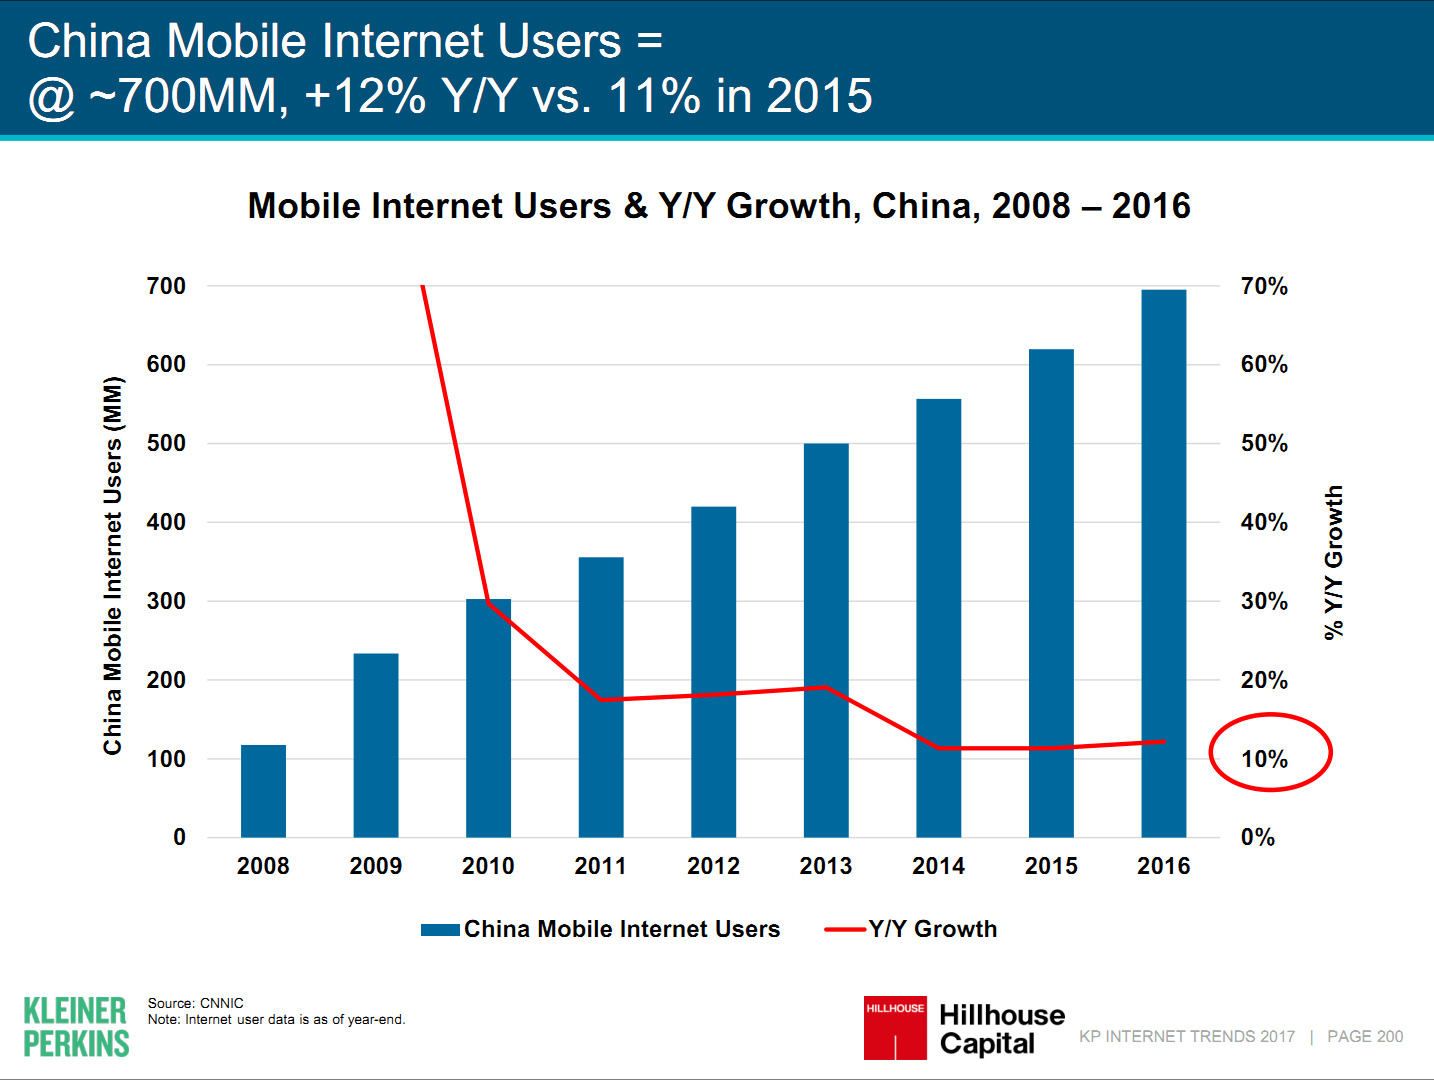 China Mobile Internet Users